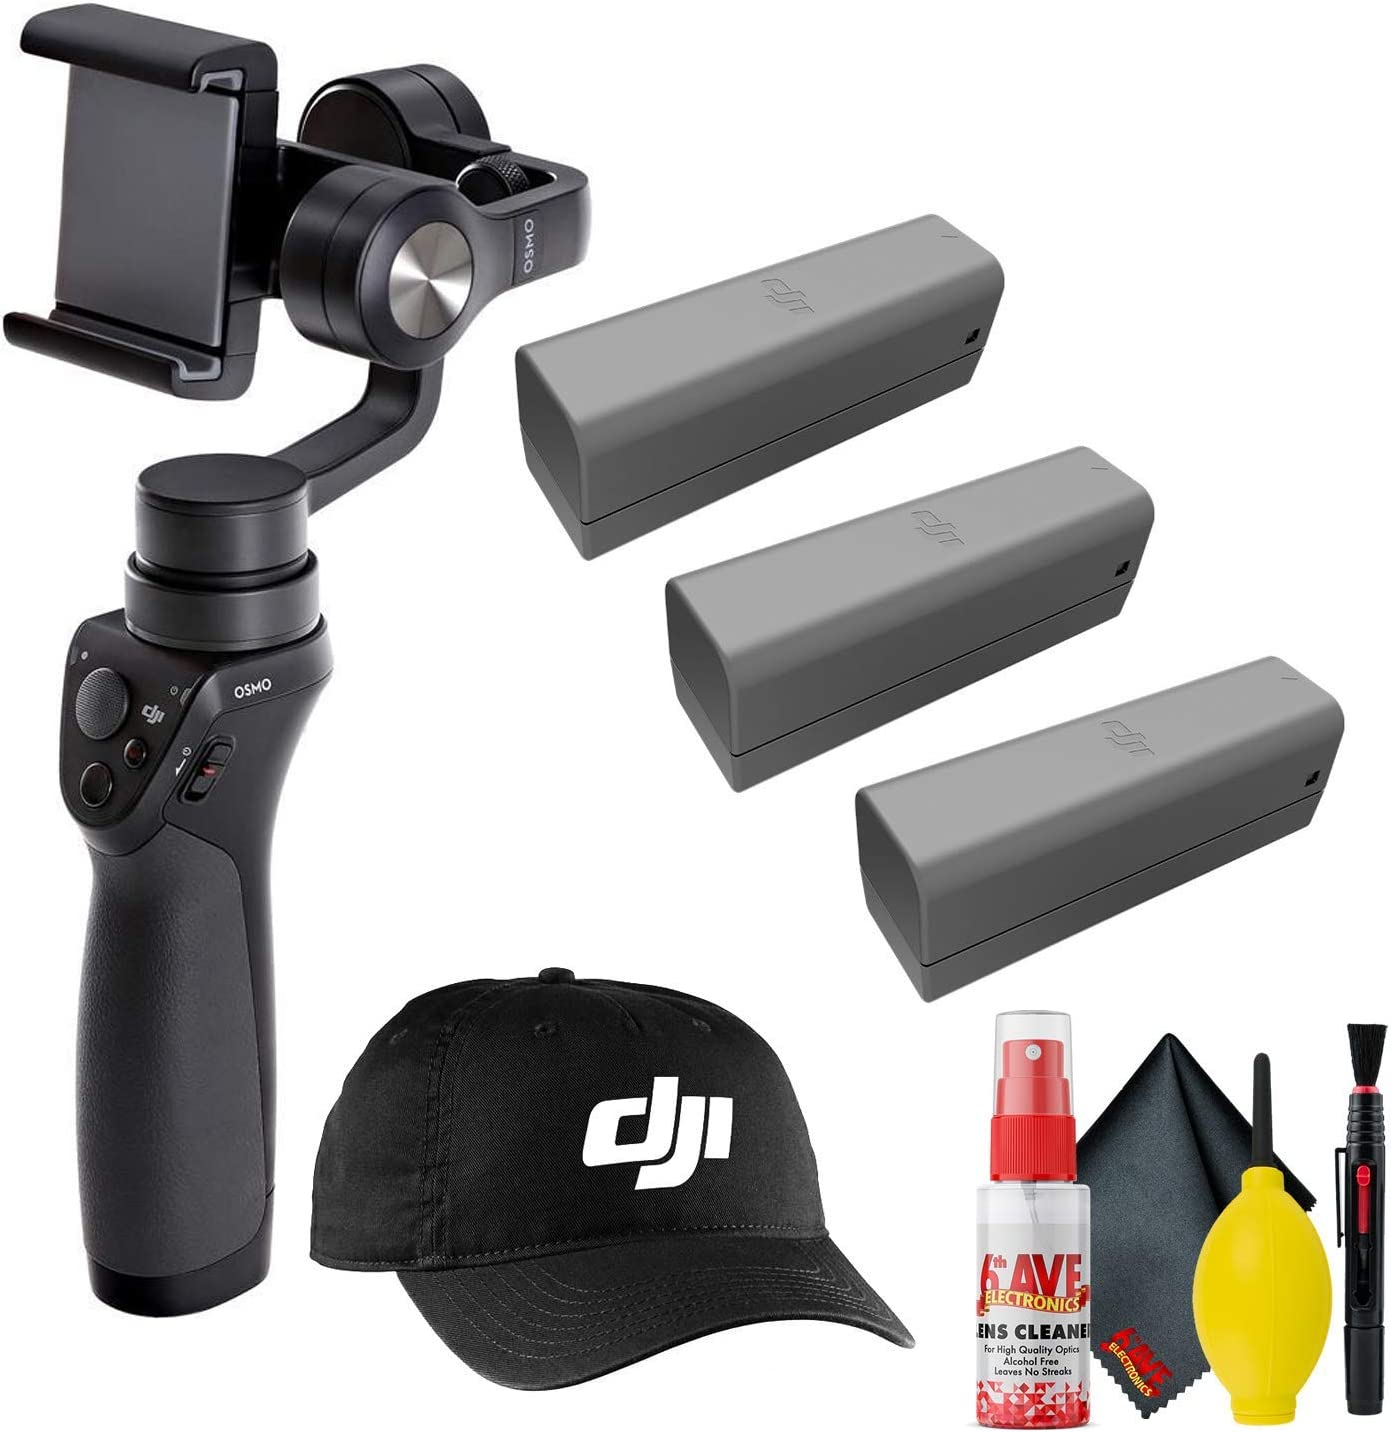 Cleaning Kit - Cleaning Cloth 3 Total Black DJI Osmo Mobile Gimbal Stabilizer More - Osmo Intelligent Batteries DJI Baseball Cap